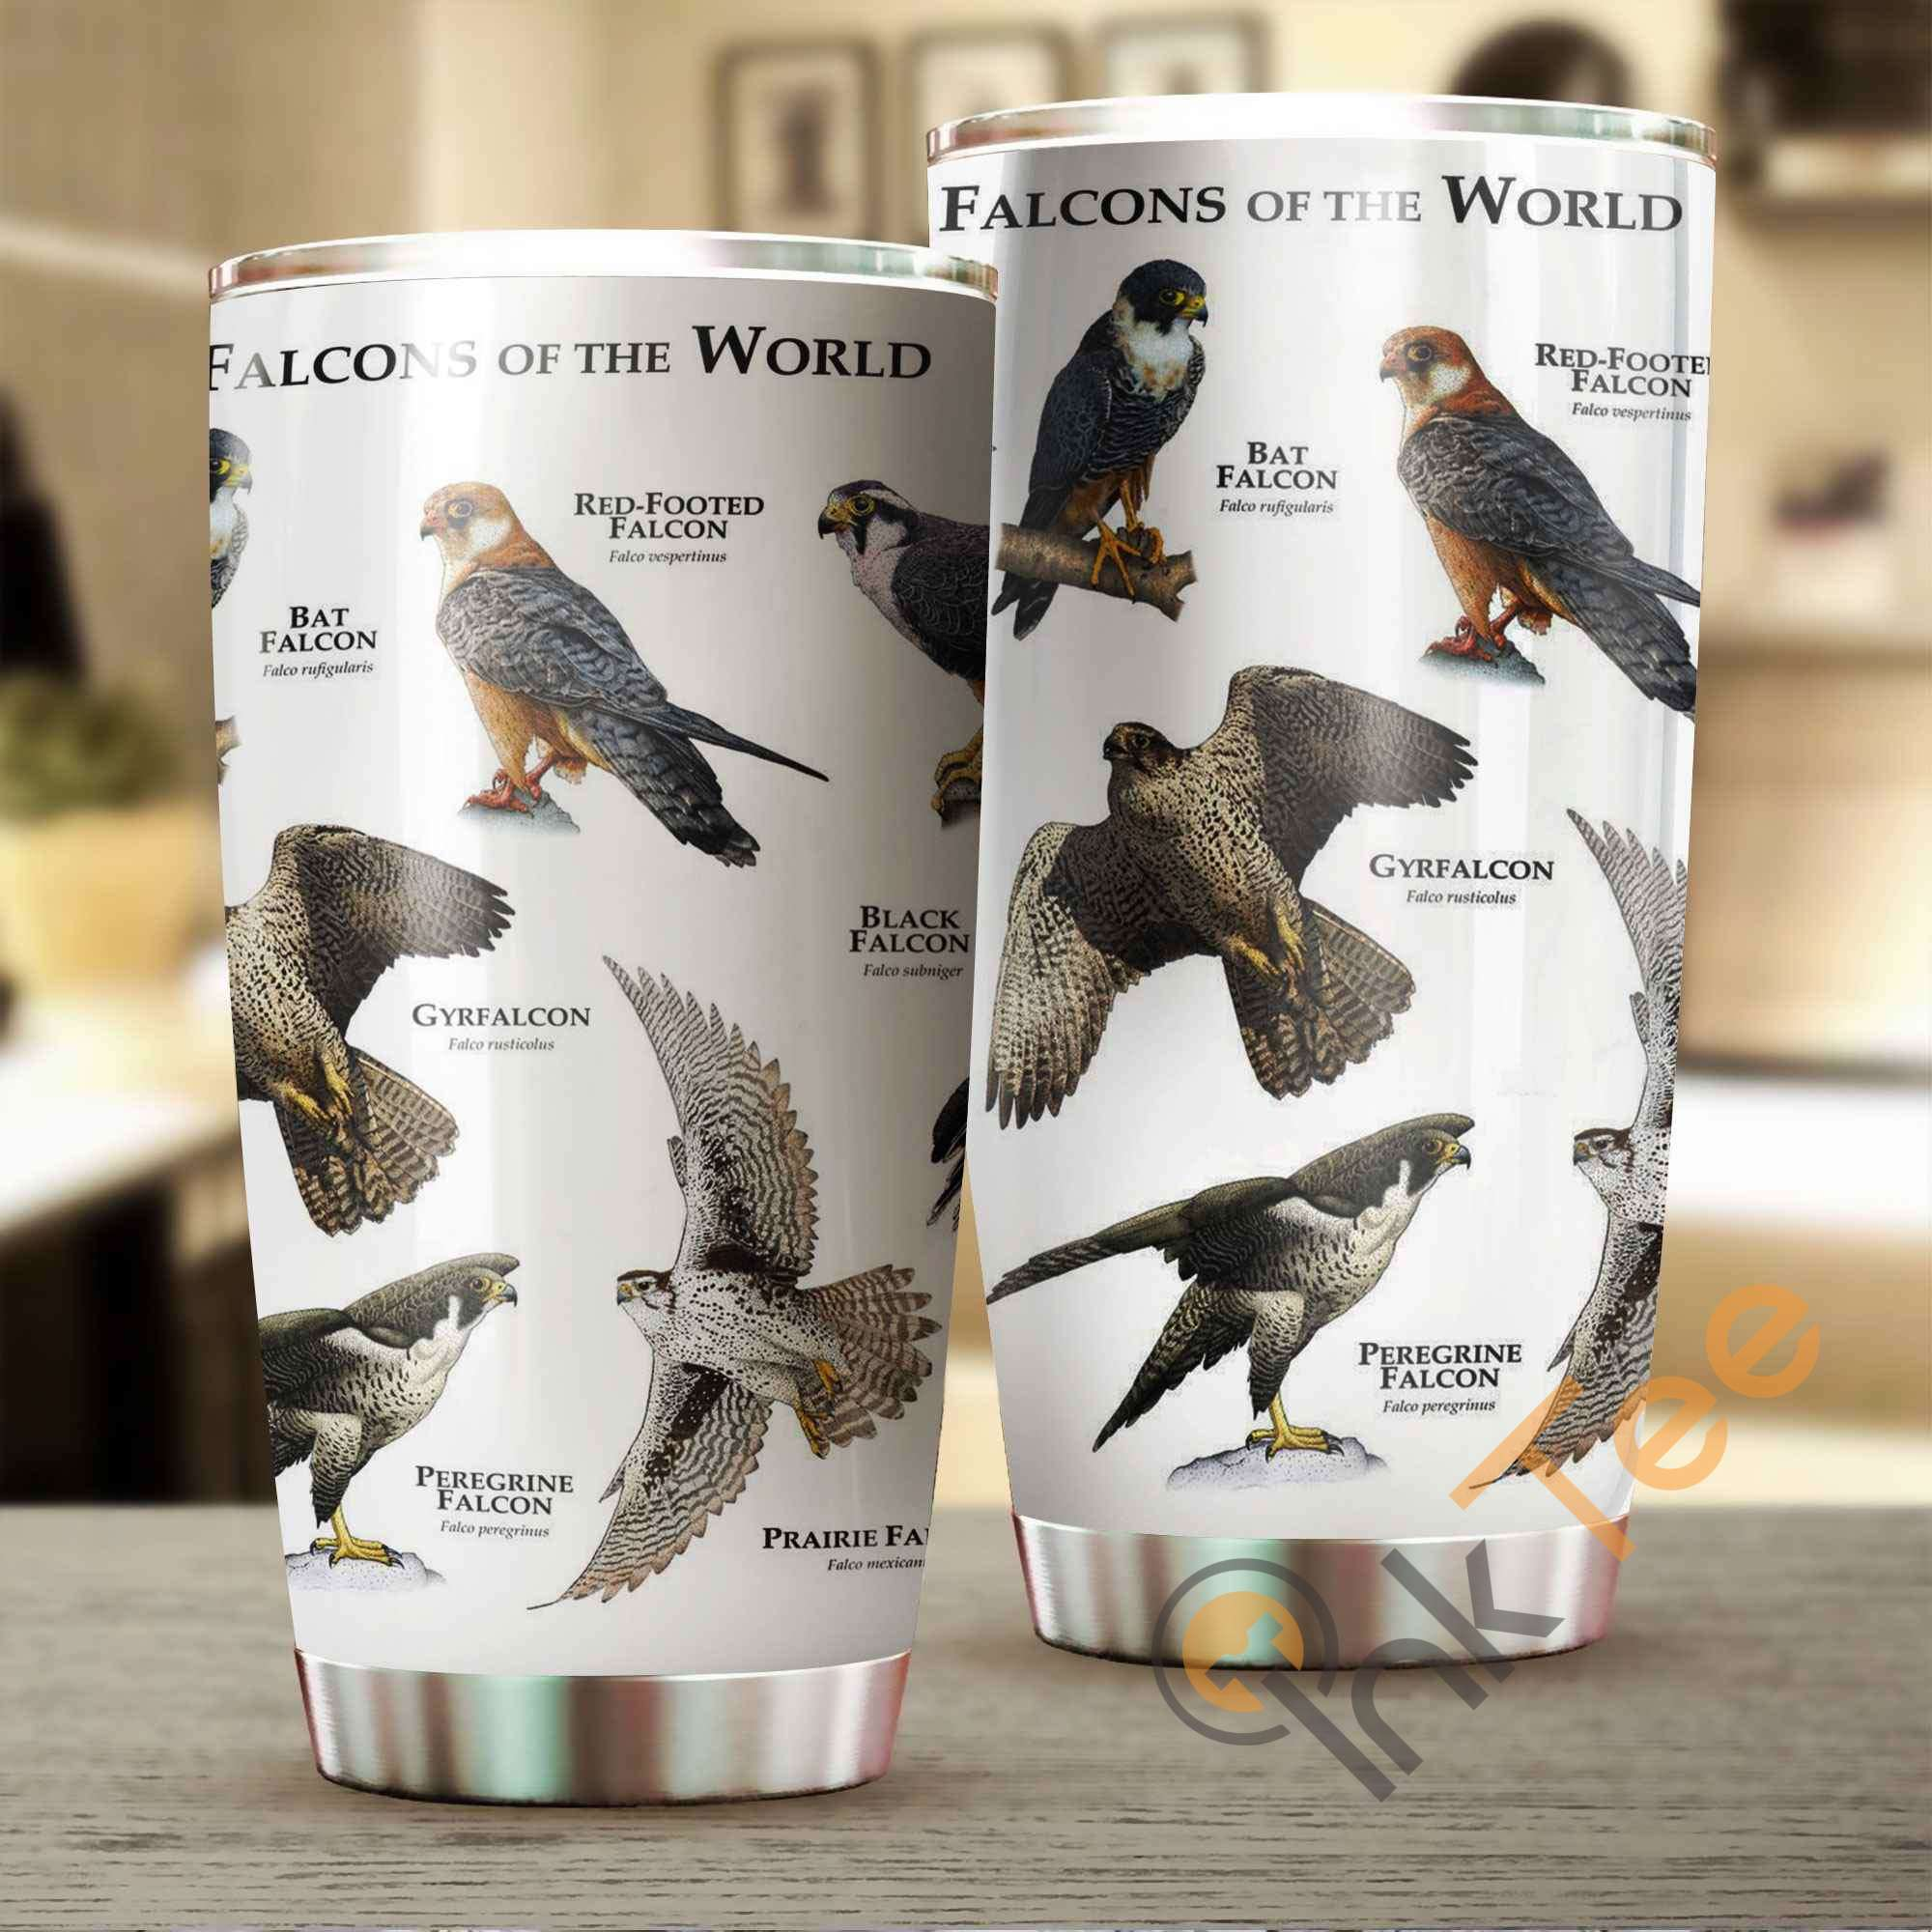 Falcons Of The World Amazon Best Seller Sku 3226 Stainless Steel Tumbler